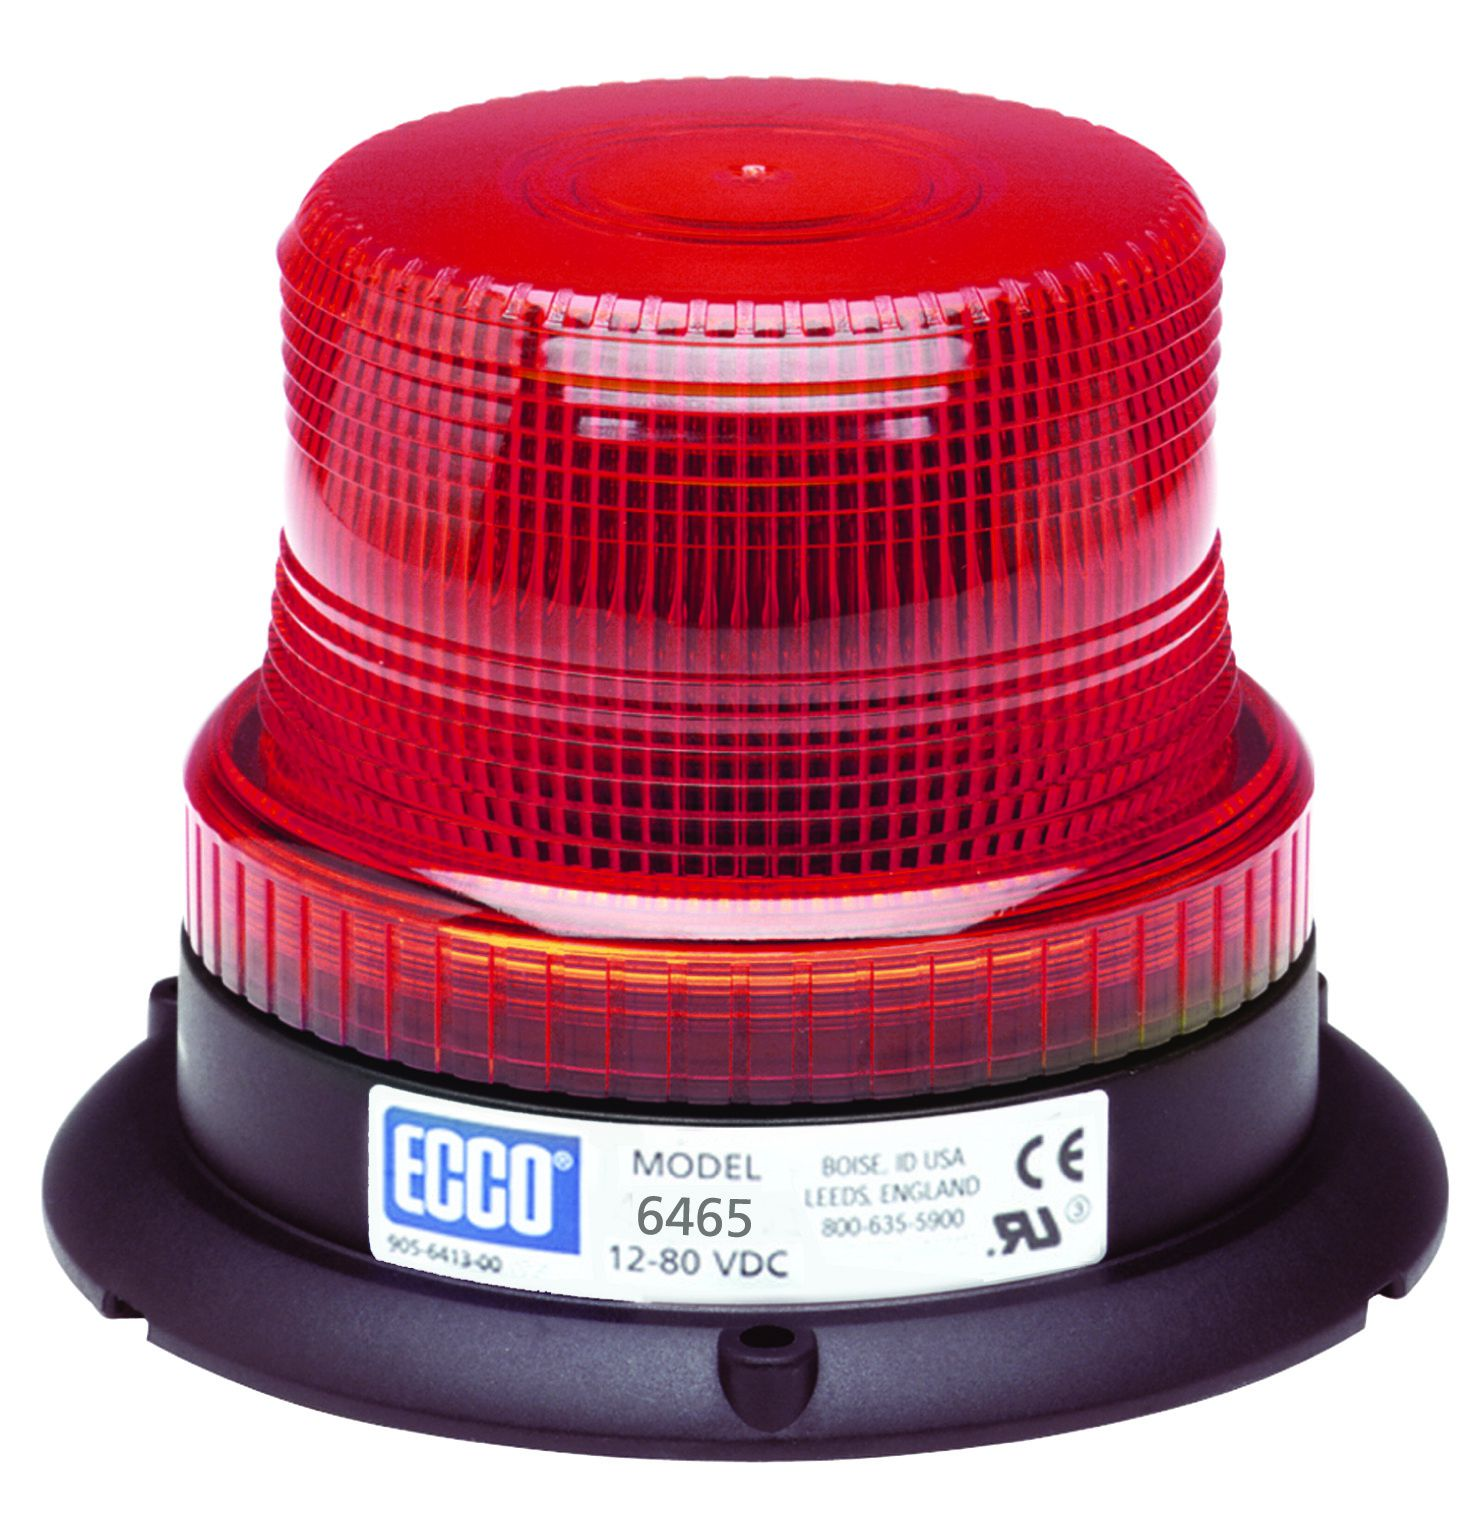 ECCO Lighting - LED Beacon: Low profile | 12-80VDC | pulse 8 flash | red